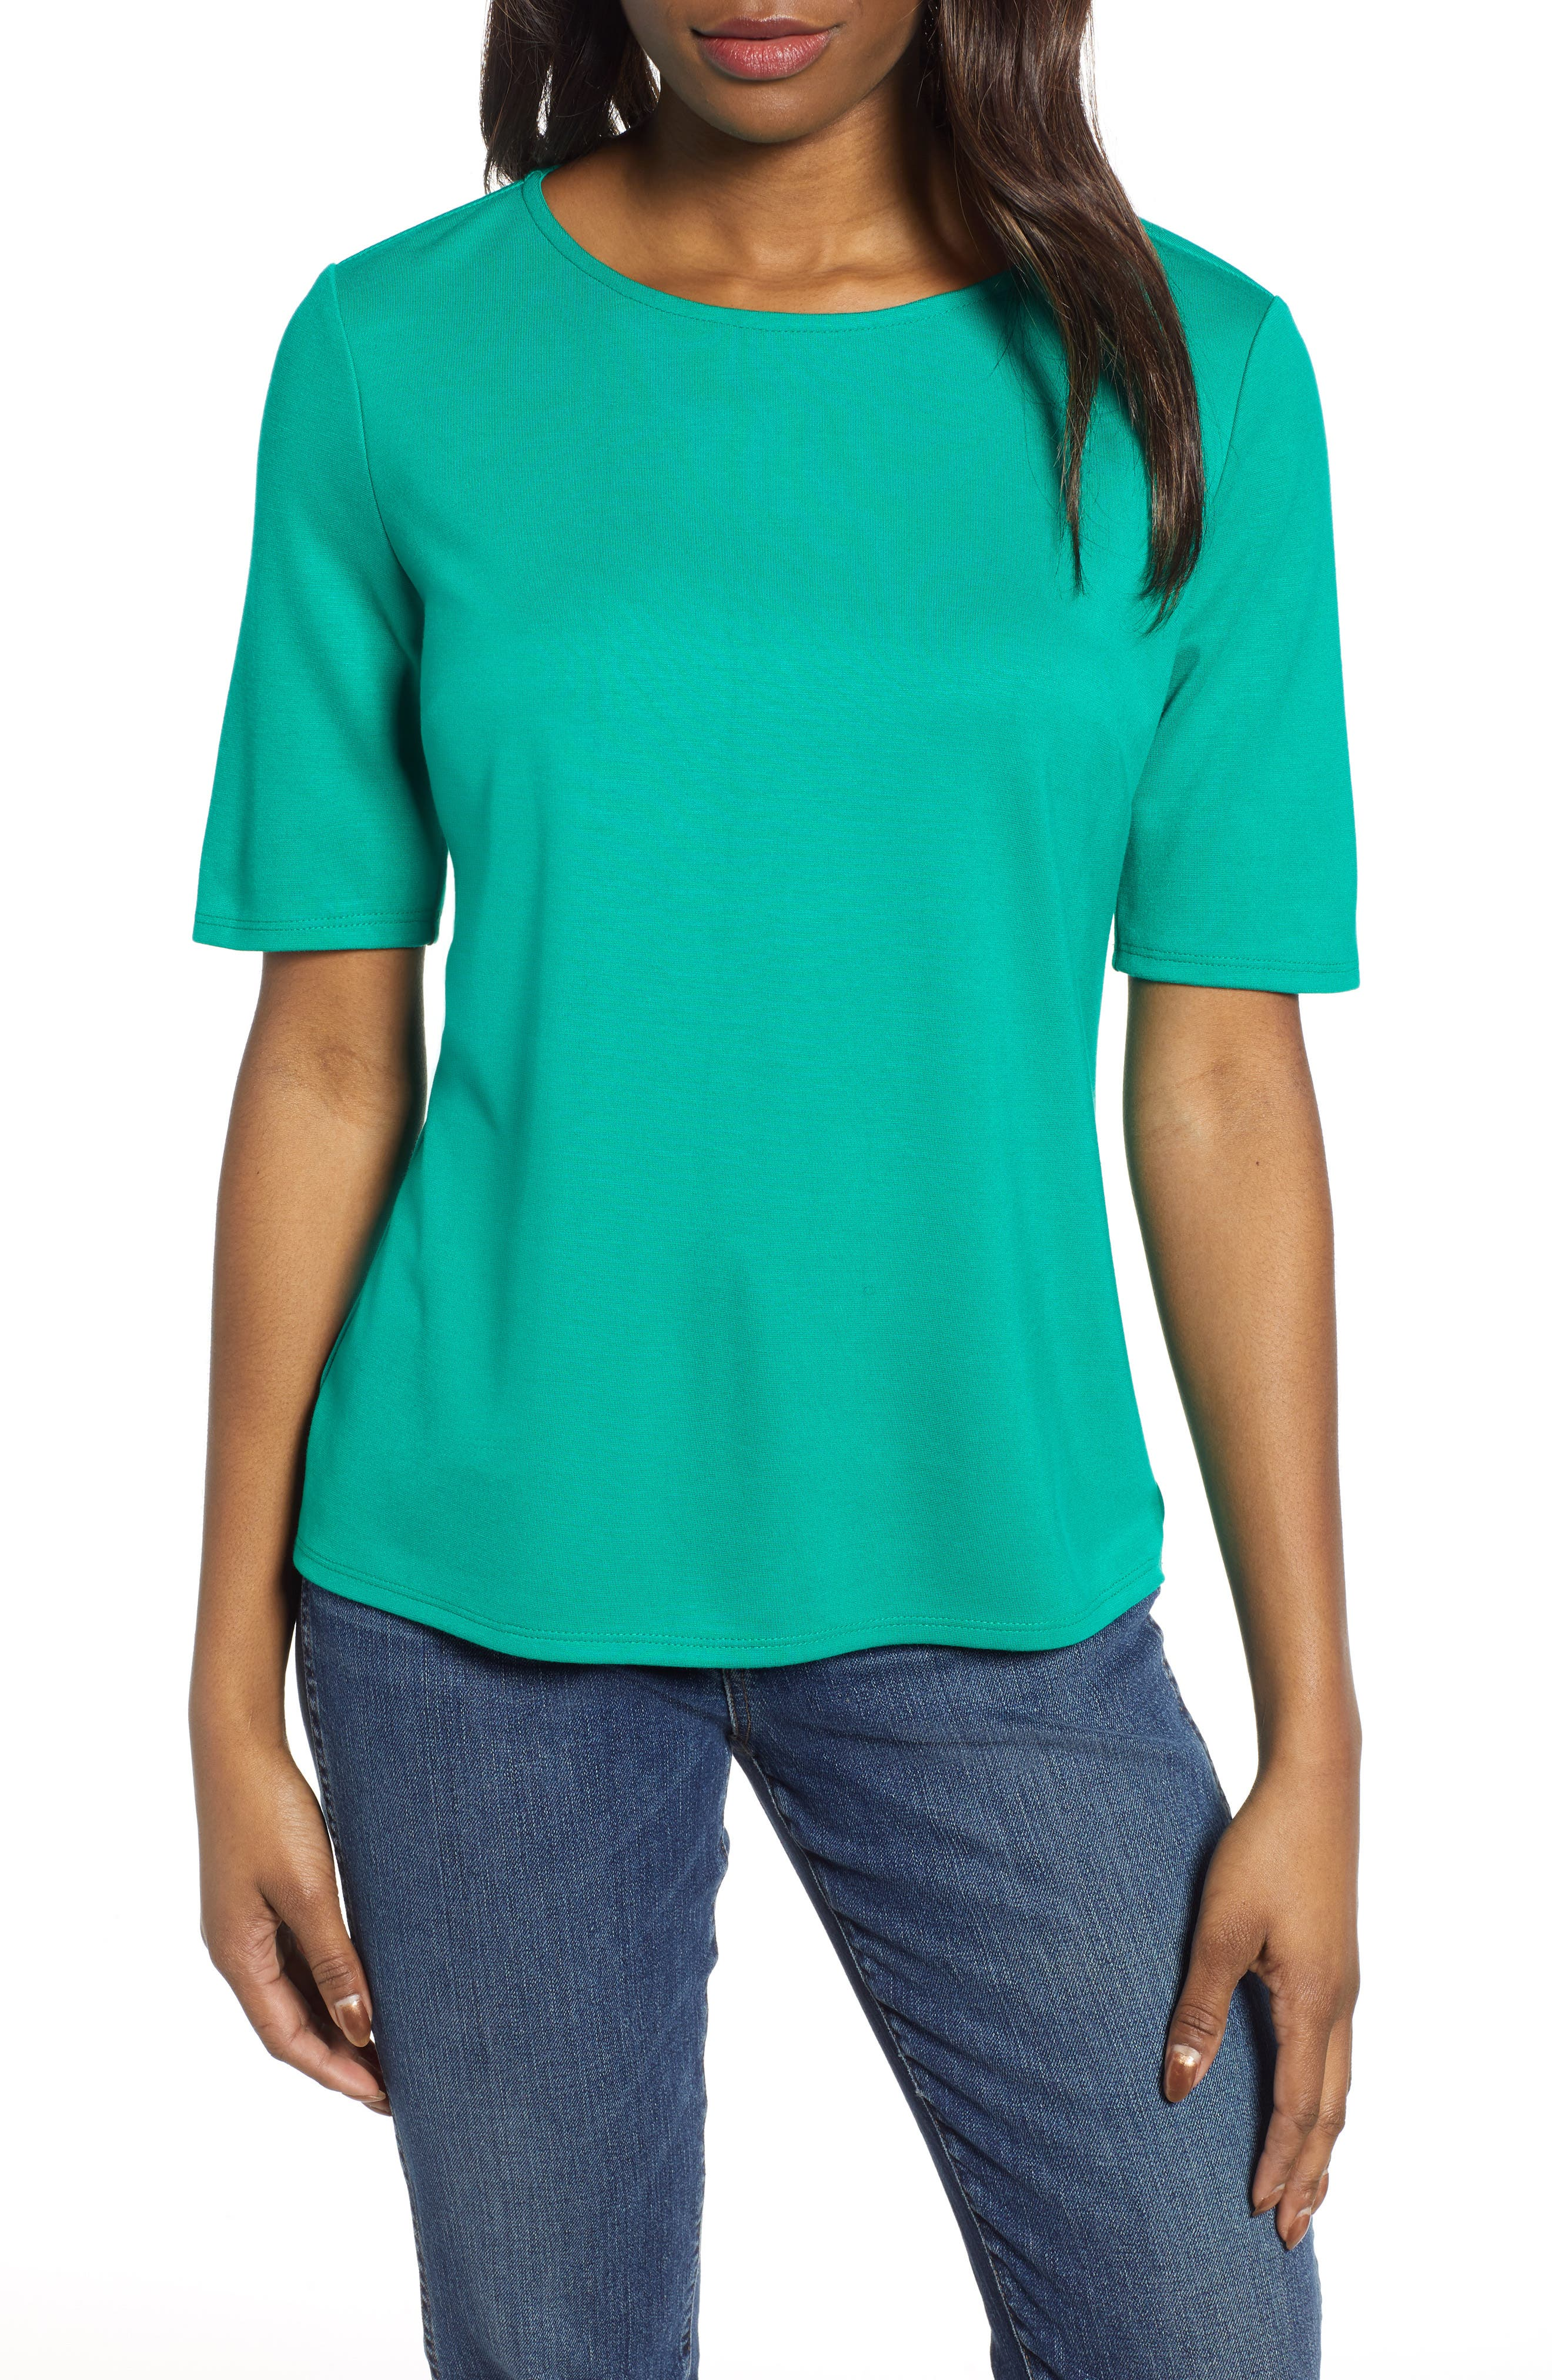 GIBSON,                             x International Women's Day Thamarr Keyhole Tie Back Ponte Top,                             Main thumbnail 1, color,                             GREEN